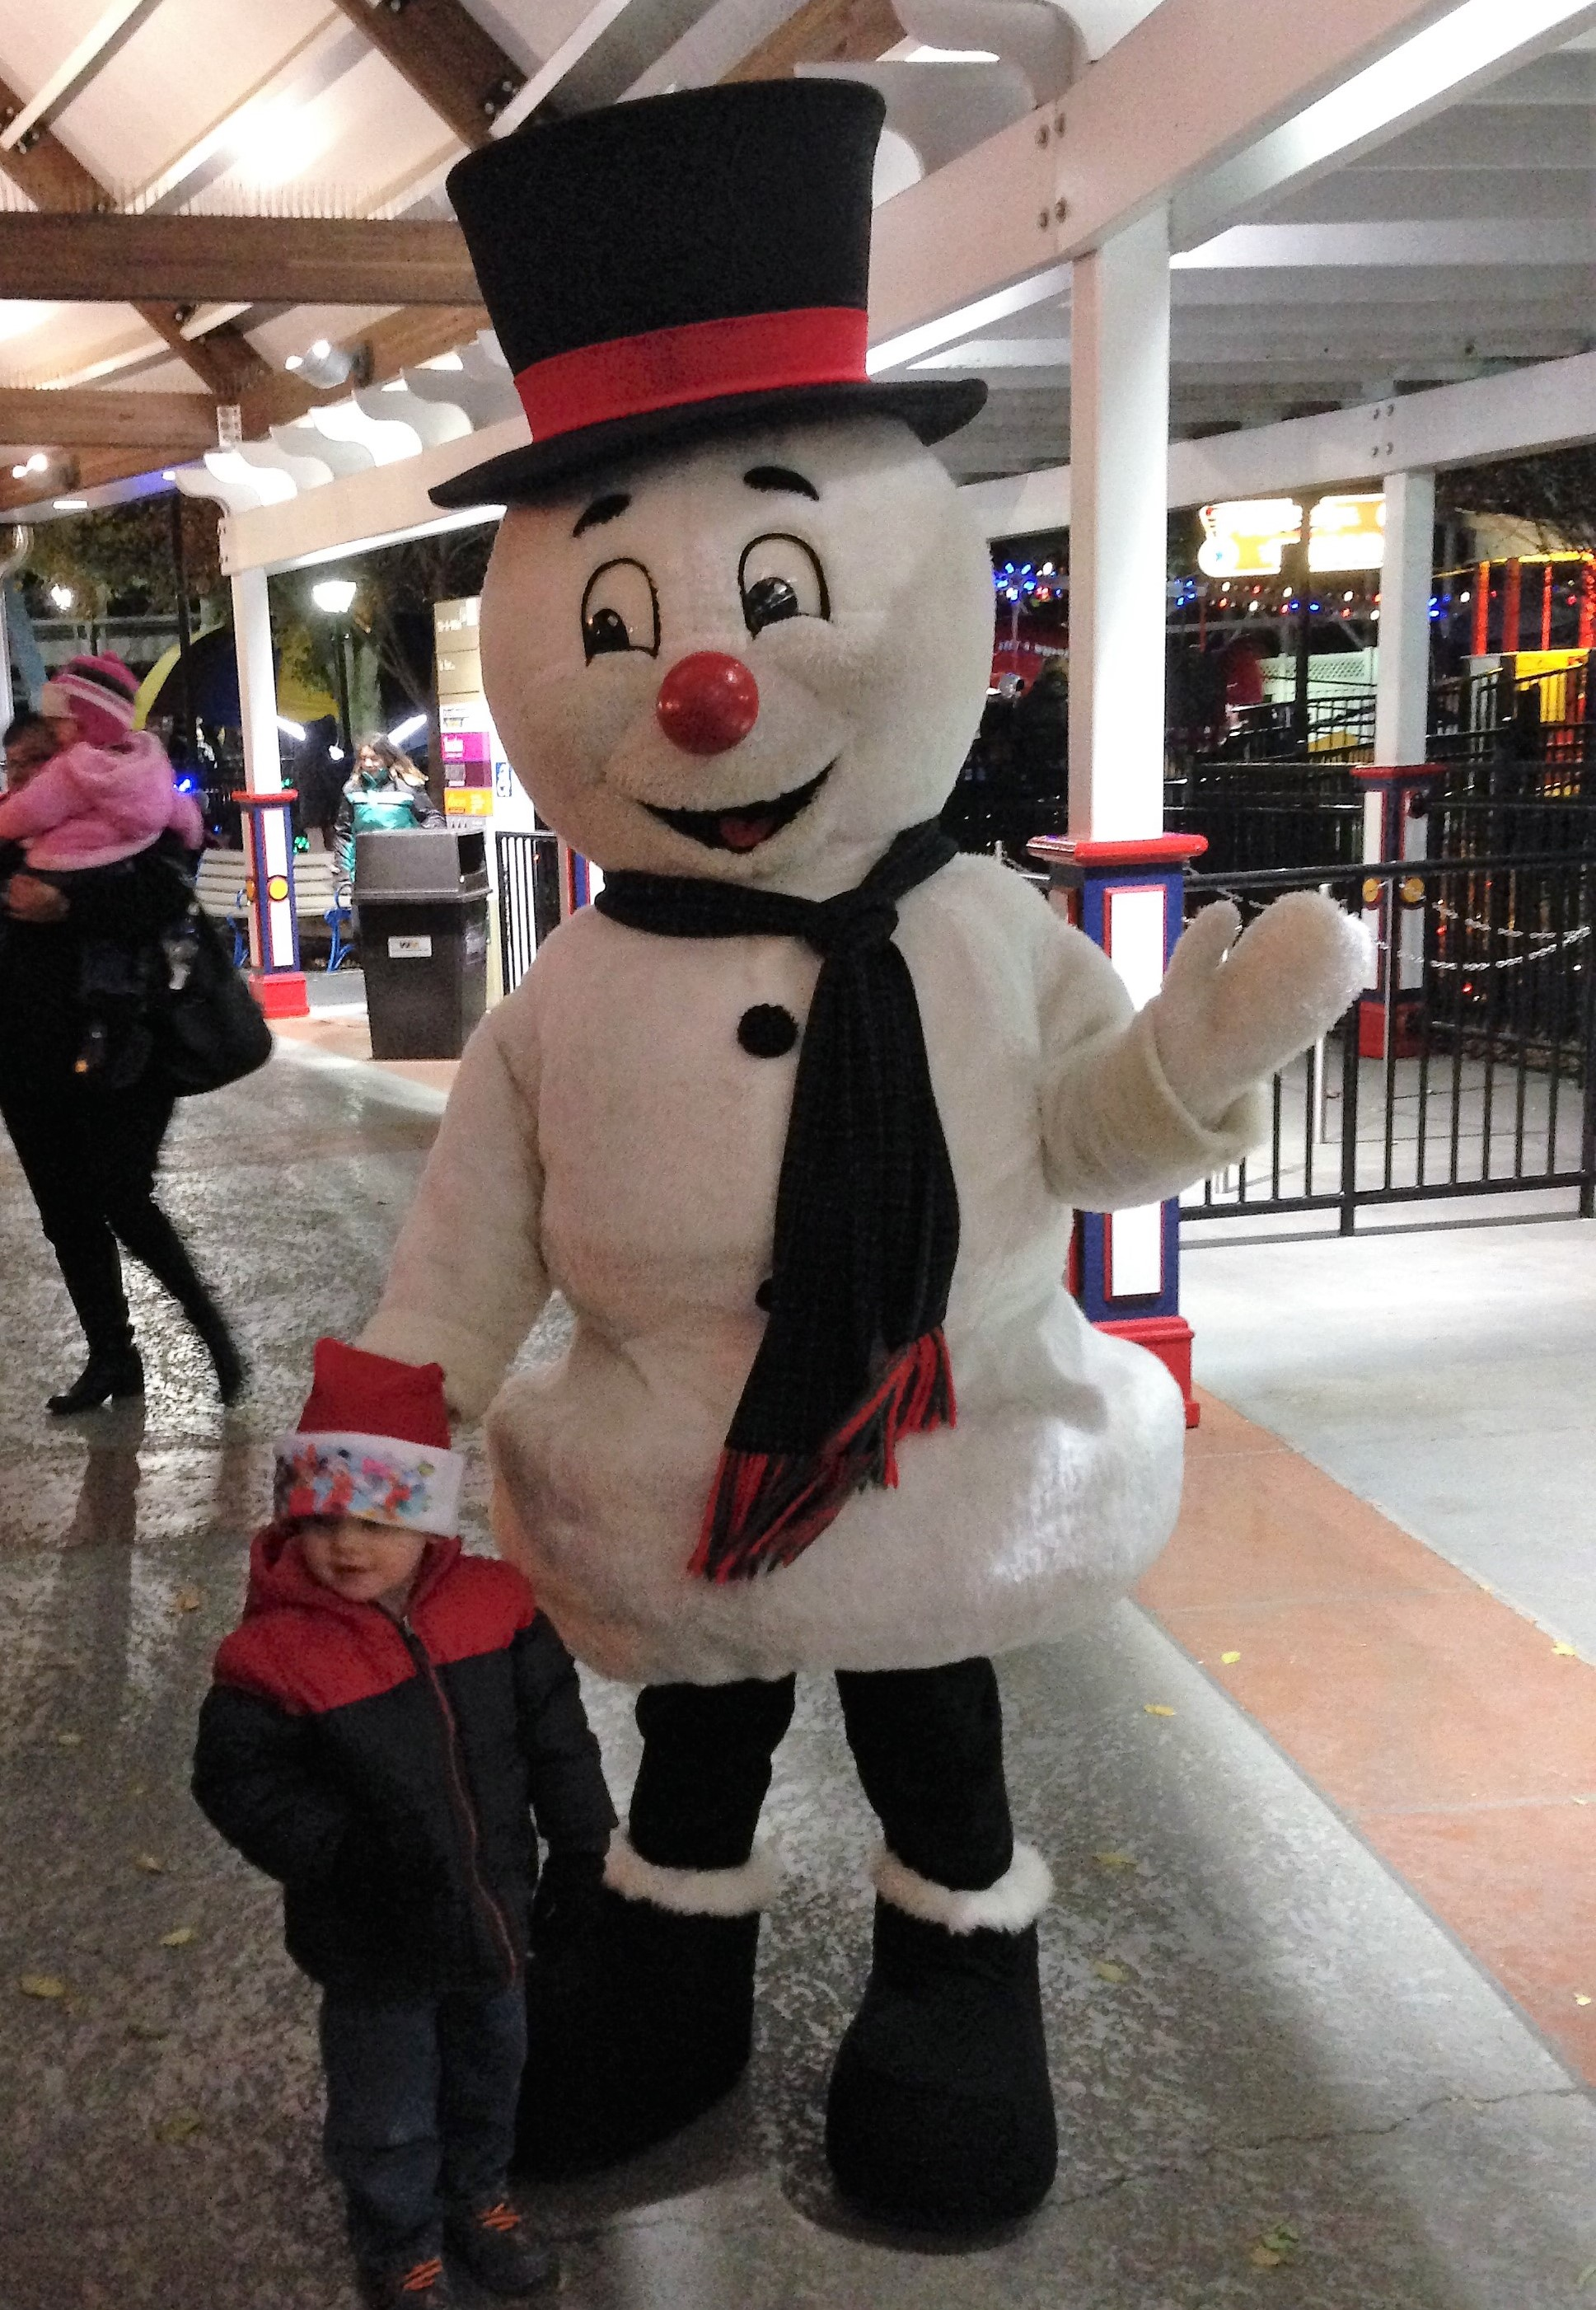 Hersheypark at Christmas - characters